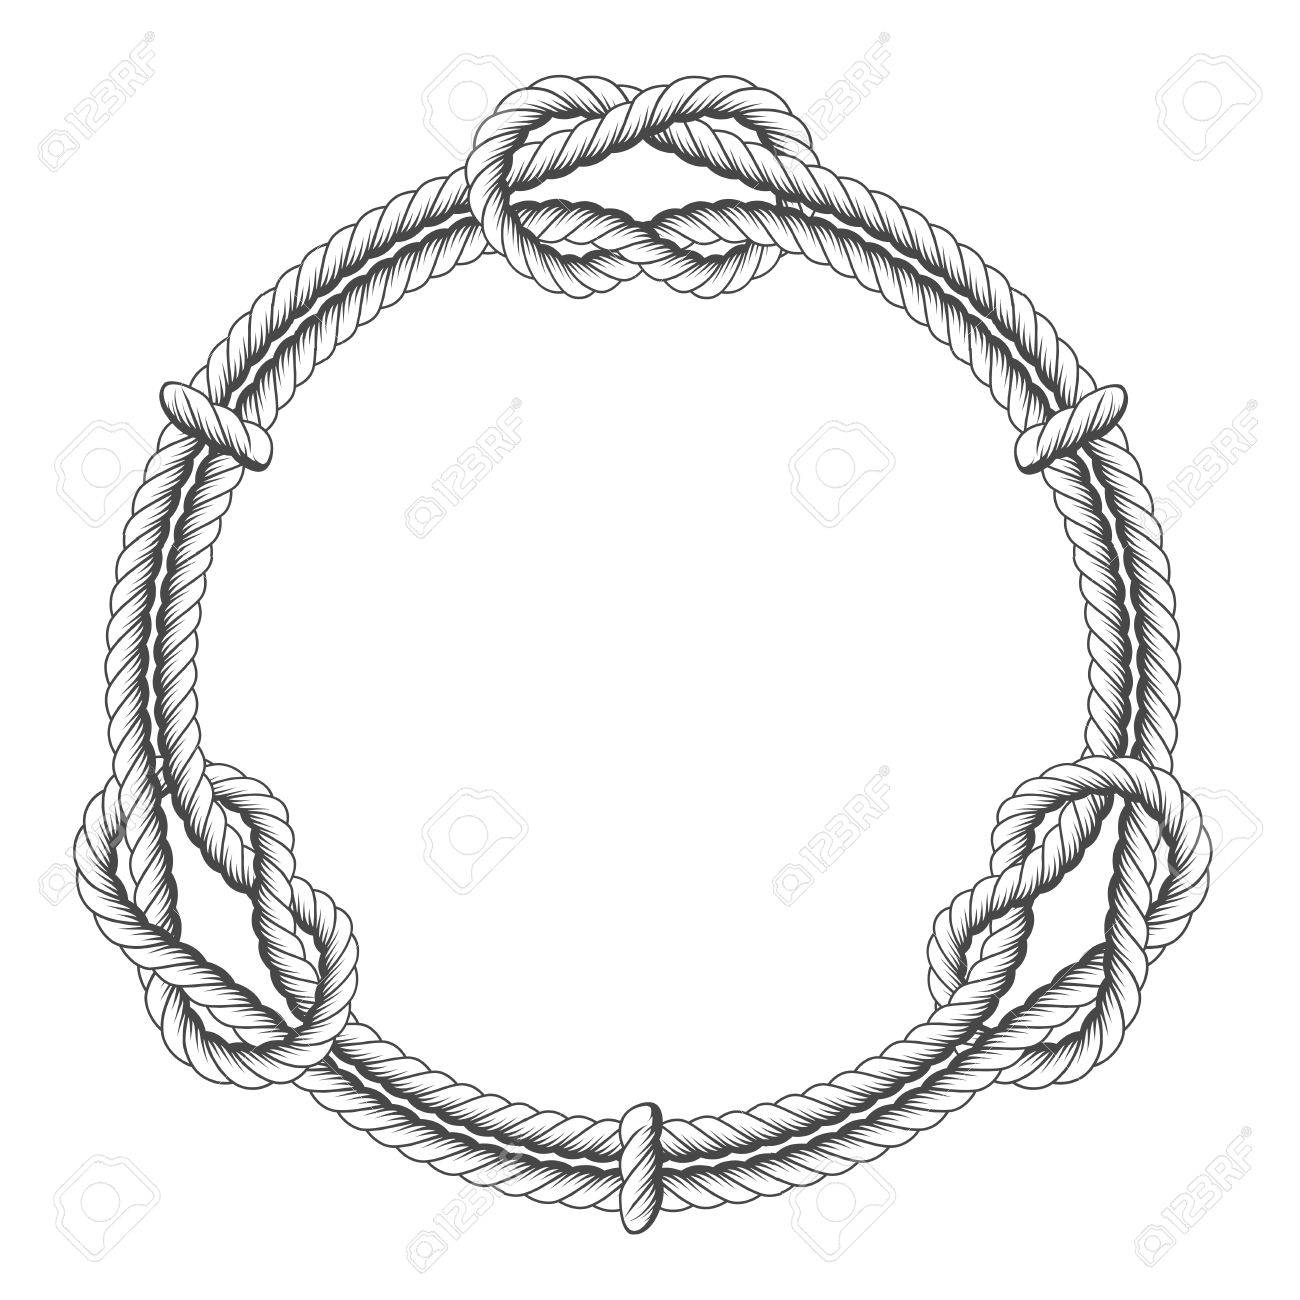 Twisted rope circle - round frame with knots - 75949631